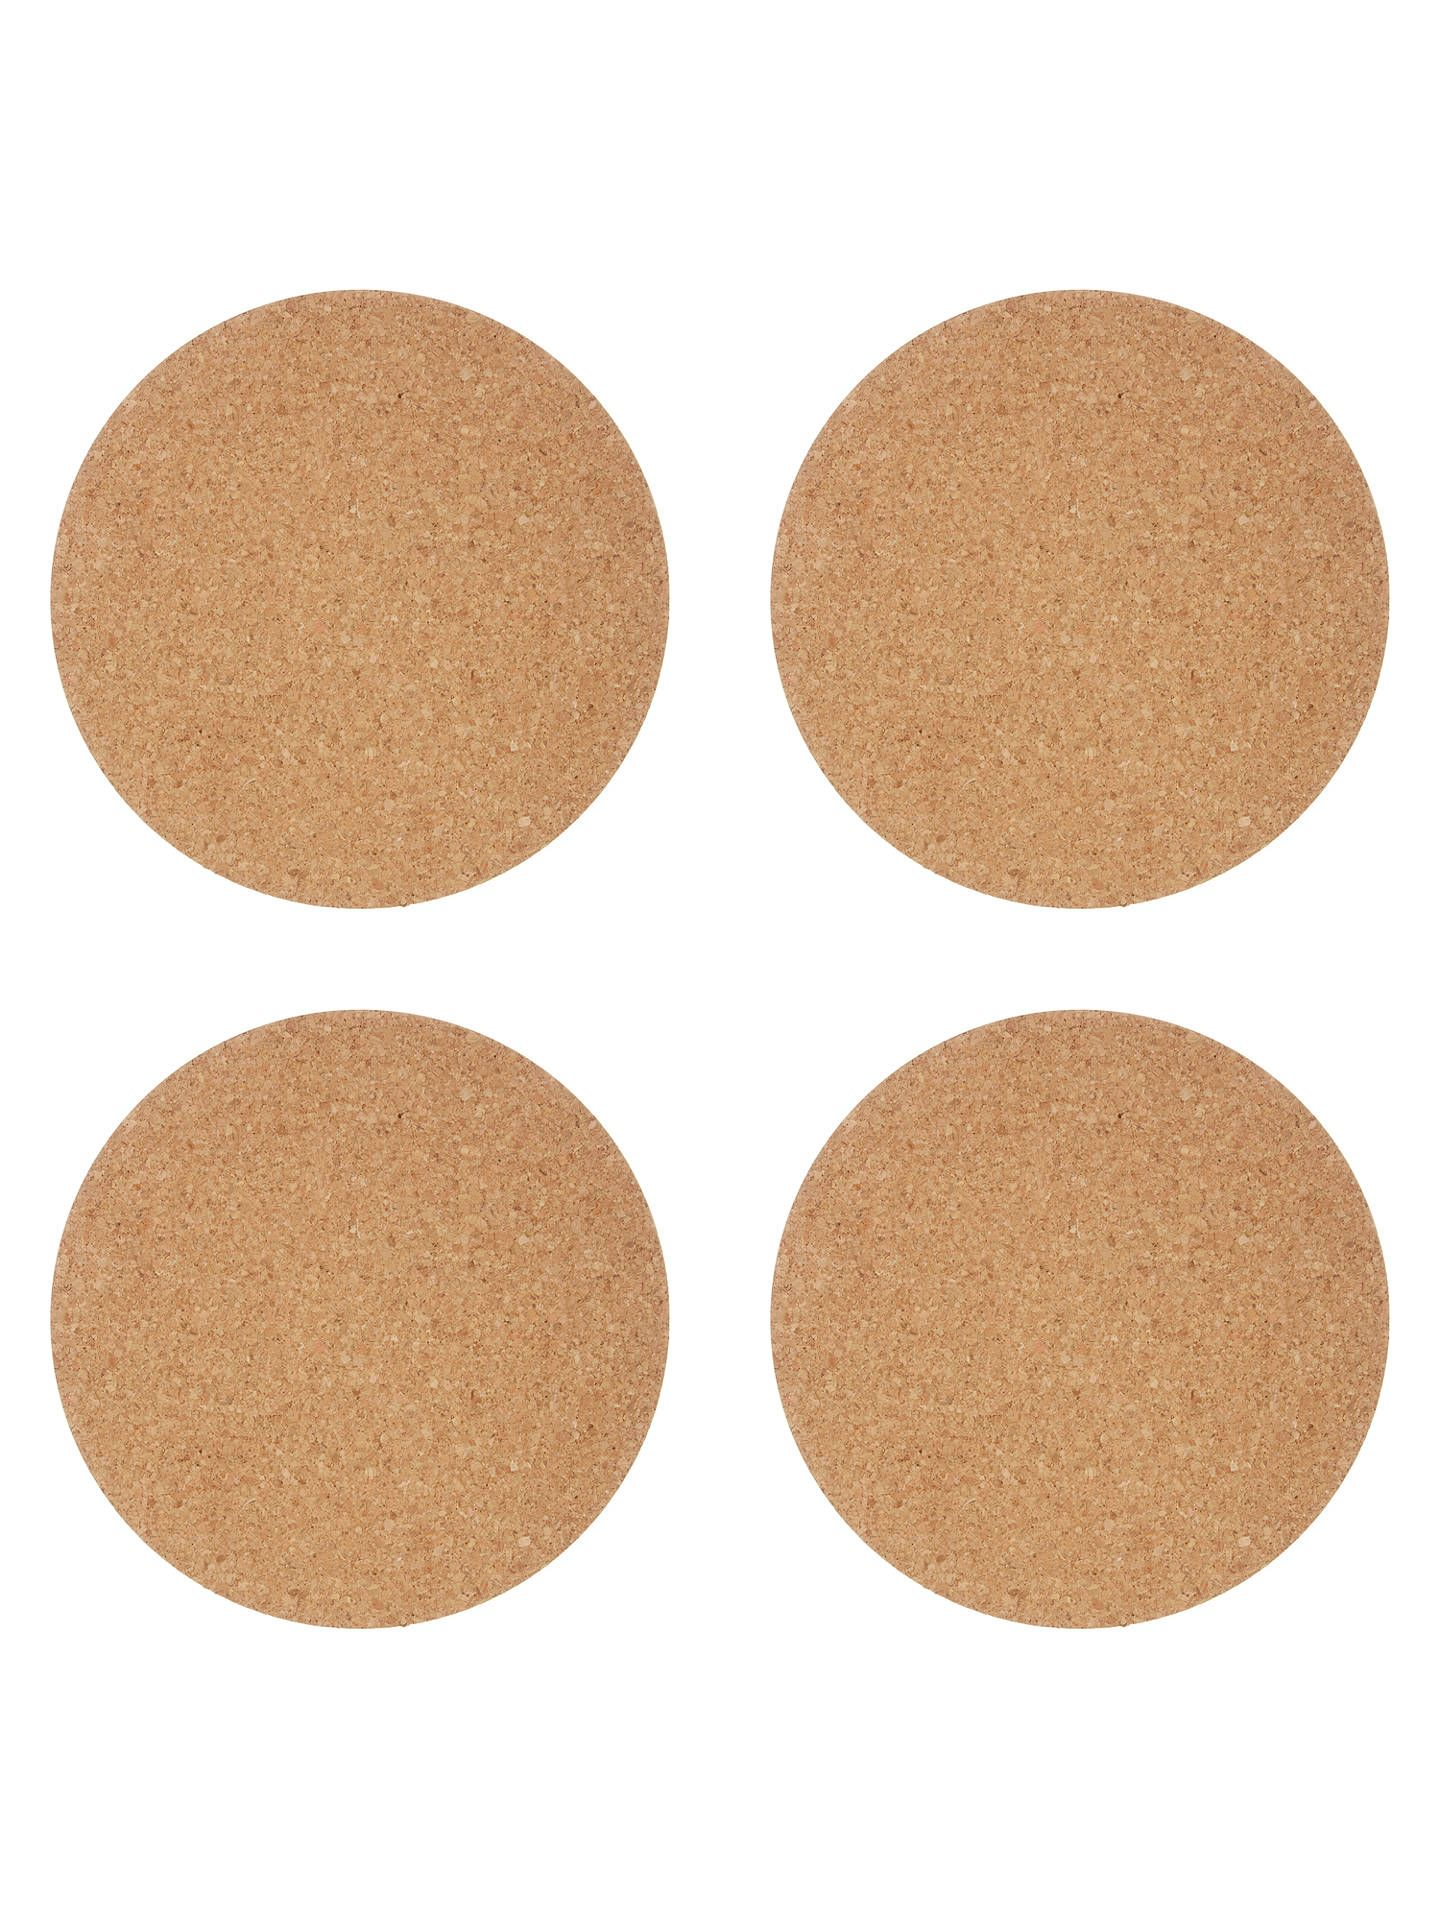 House By John Lewis Round Cork Placemats Set Of 4 House By John Lewis Placemats Cork Coasters